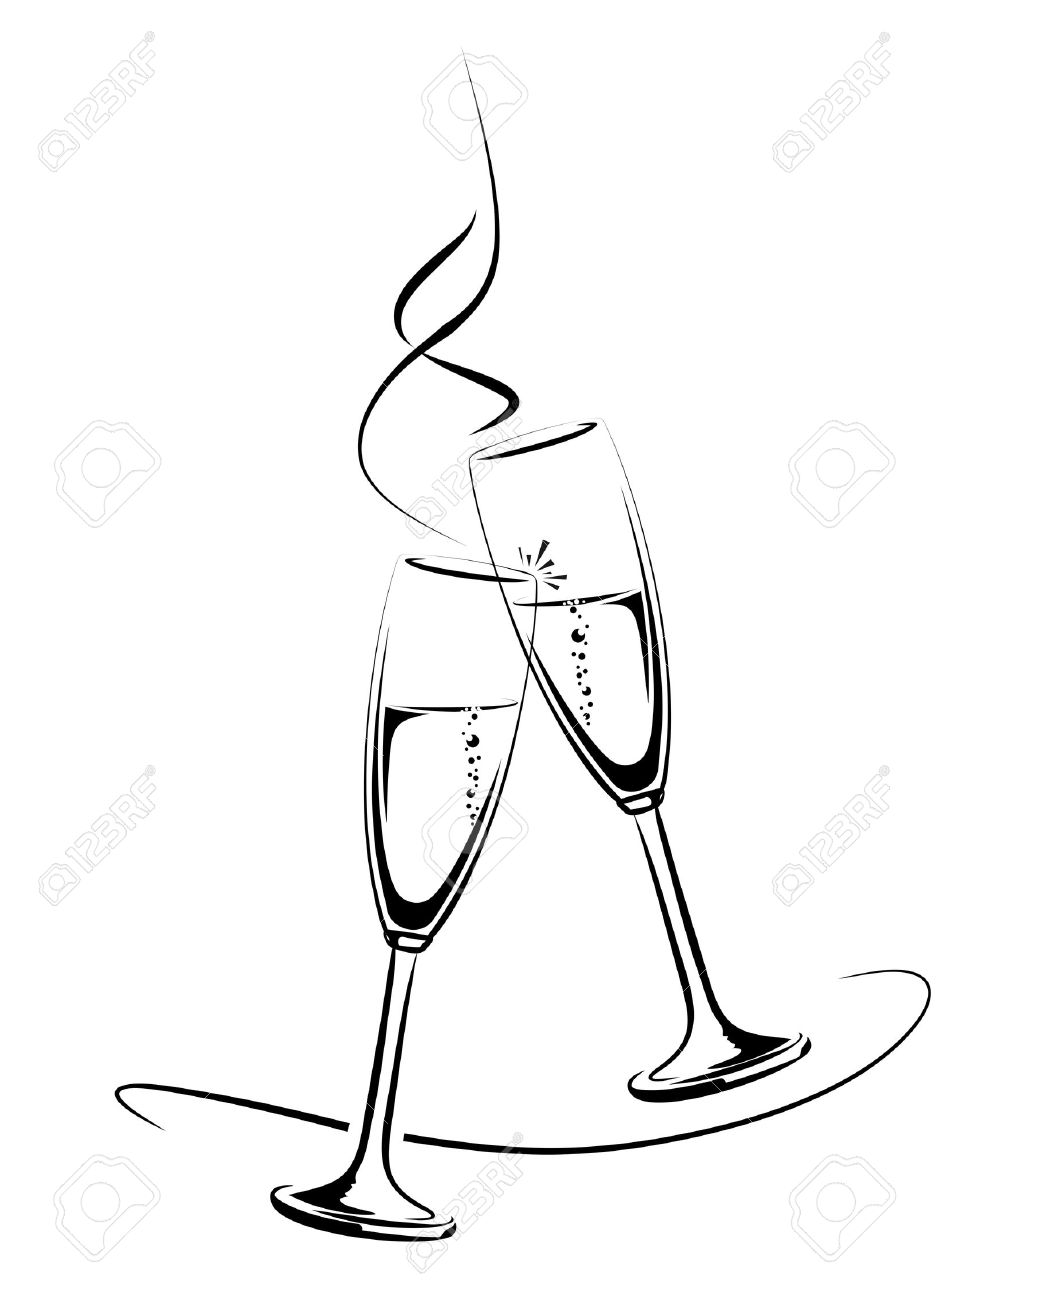 Champagne Glass Drawing_ at GetDrawings.com.